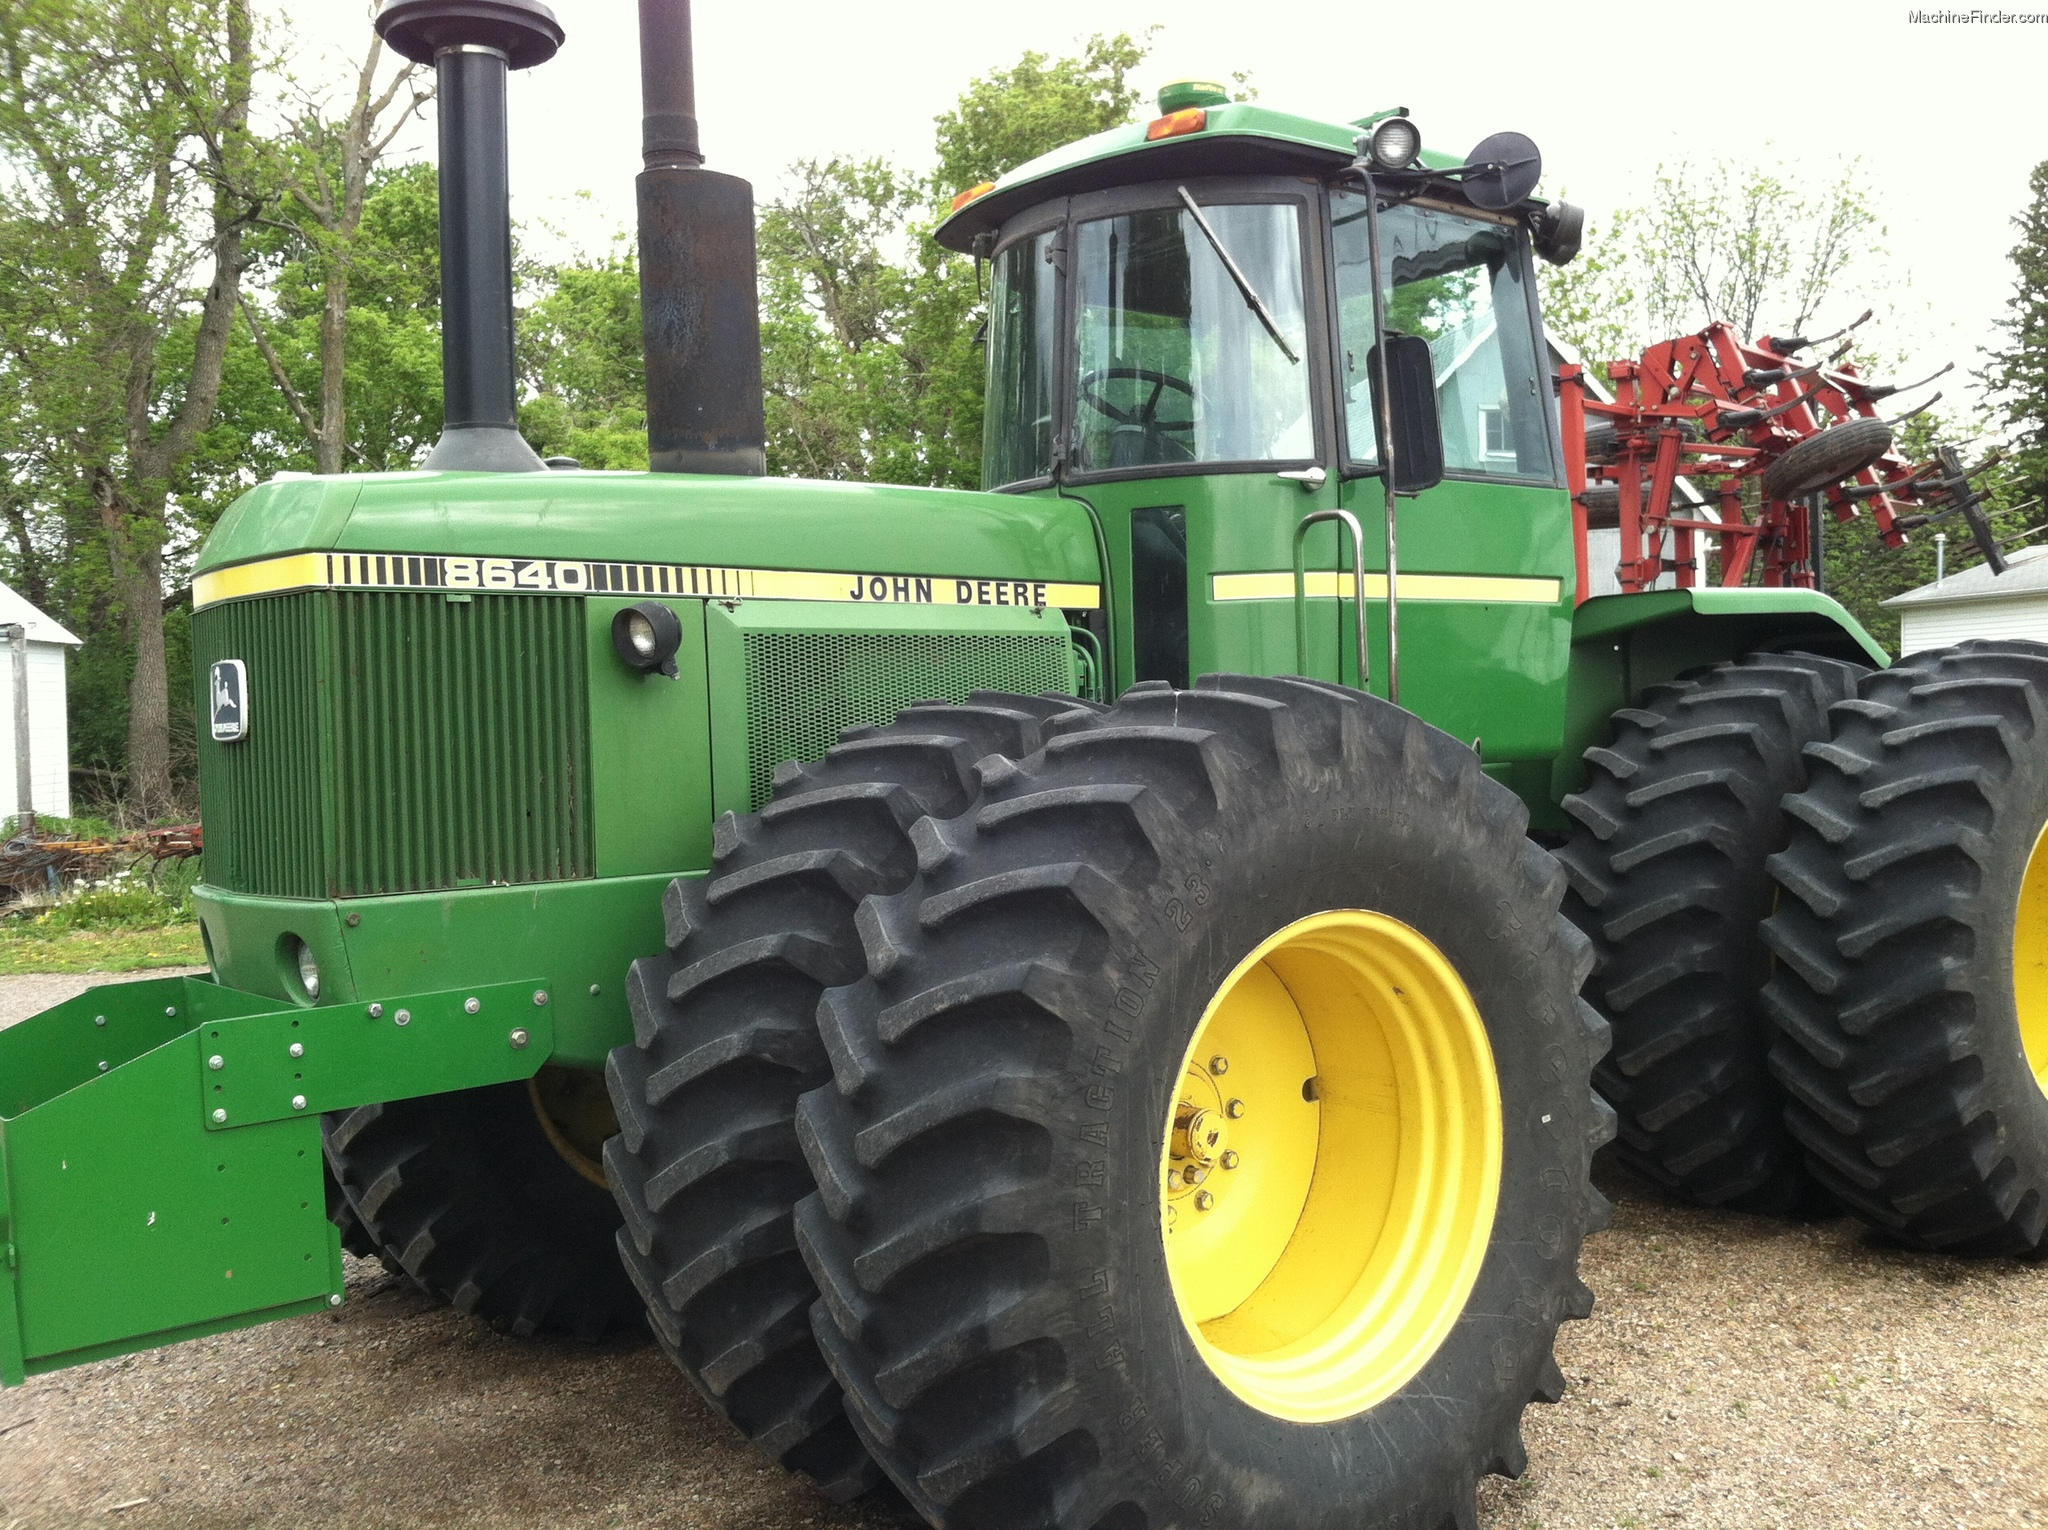 John Deere Tractor Manual Technical Data and Information